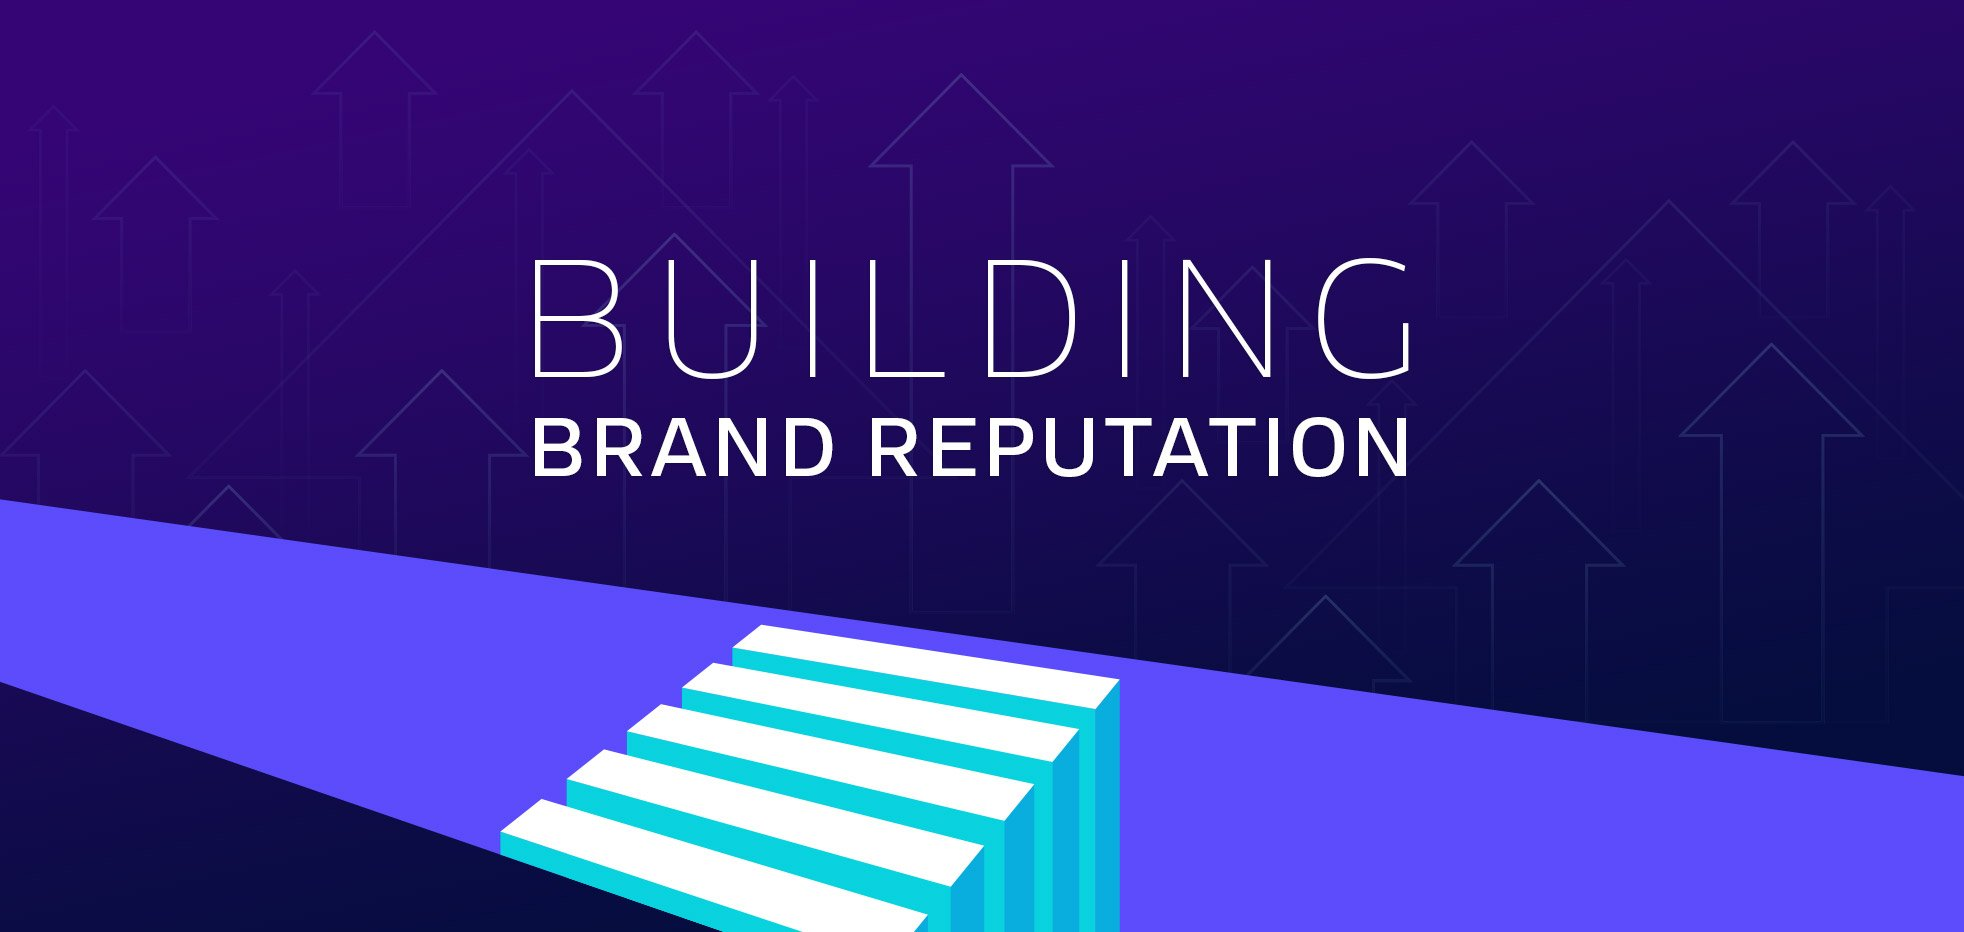 Building Brand Reputation